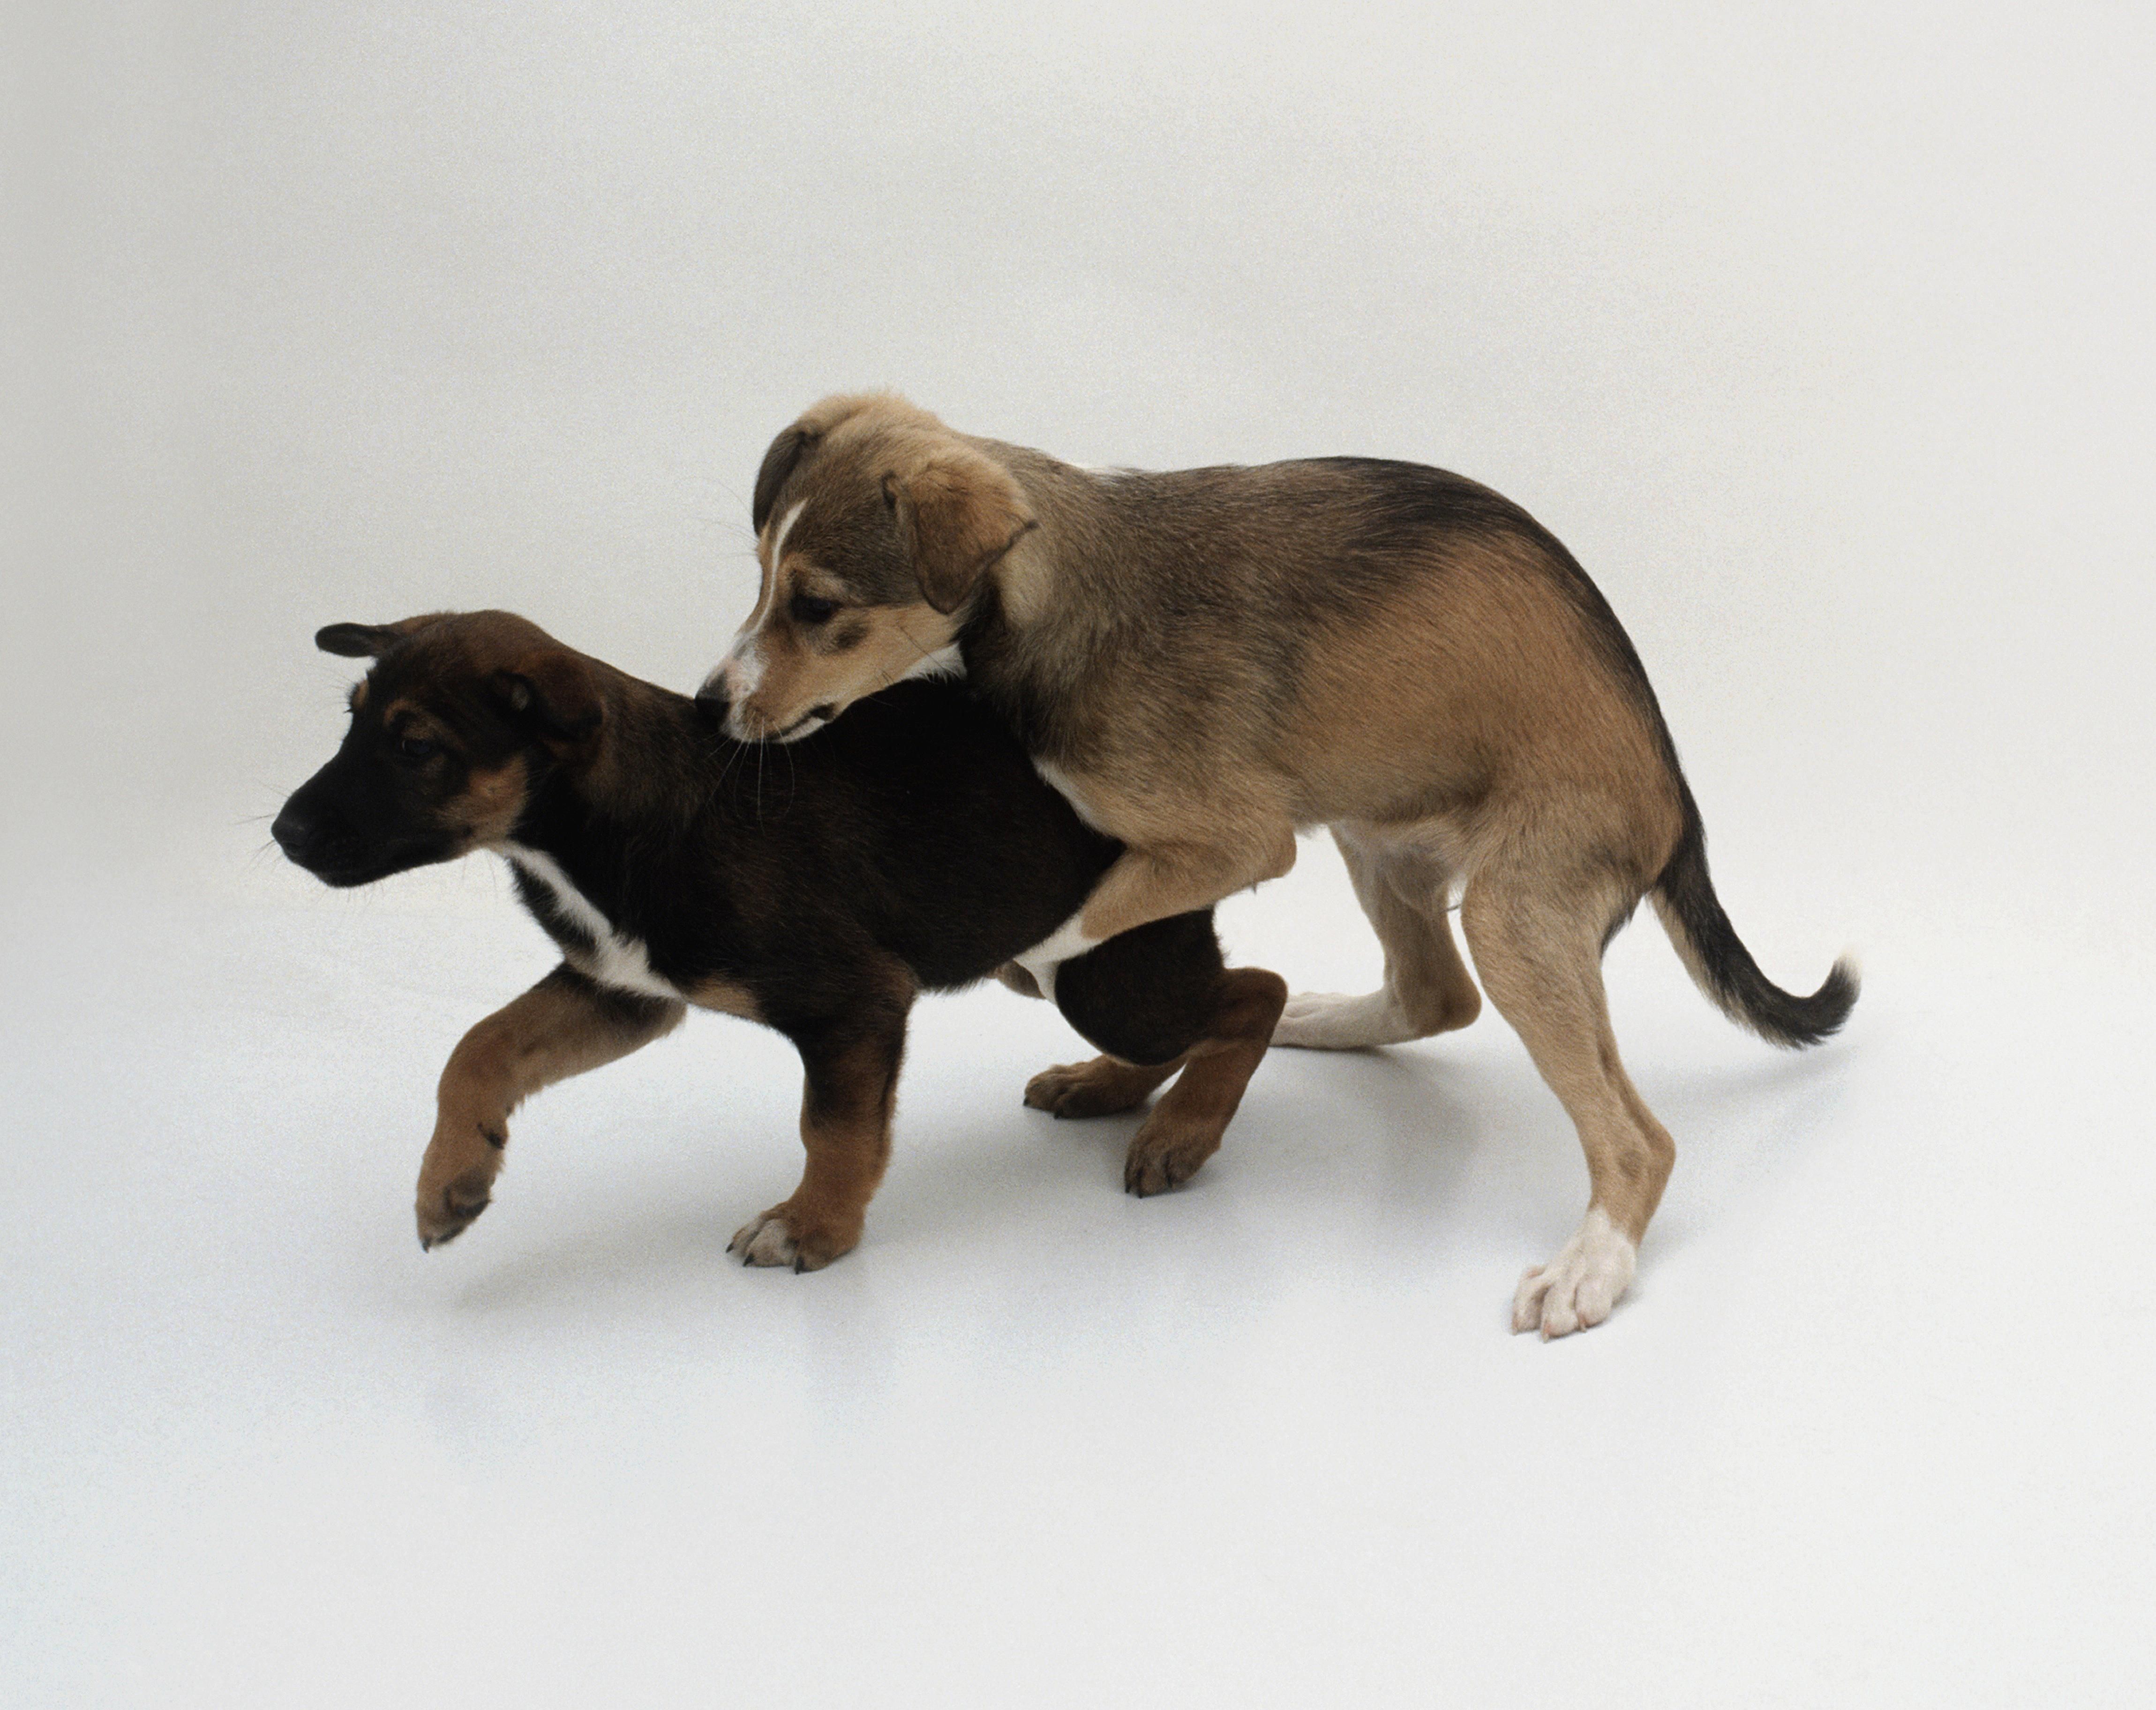 56a51f8f29cece565b2dc4be6f4842a2 - How To Get A Boy Dog To Hump You